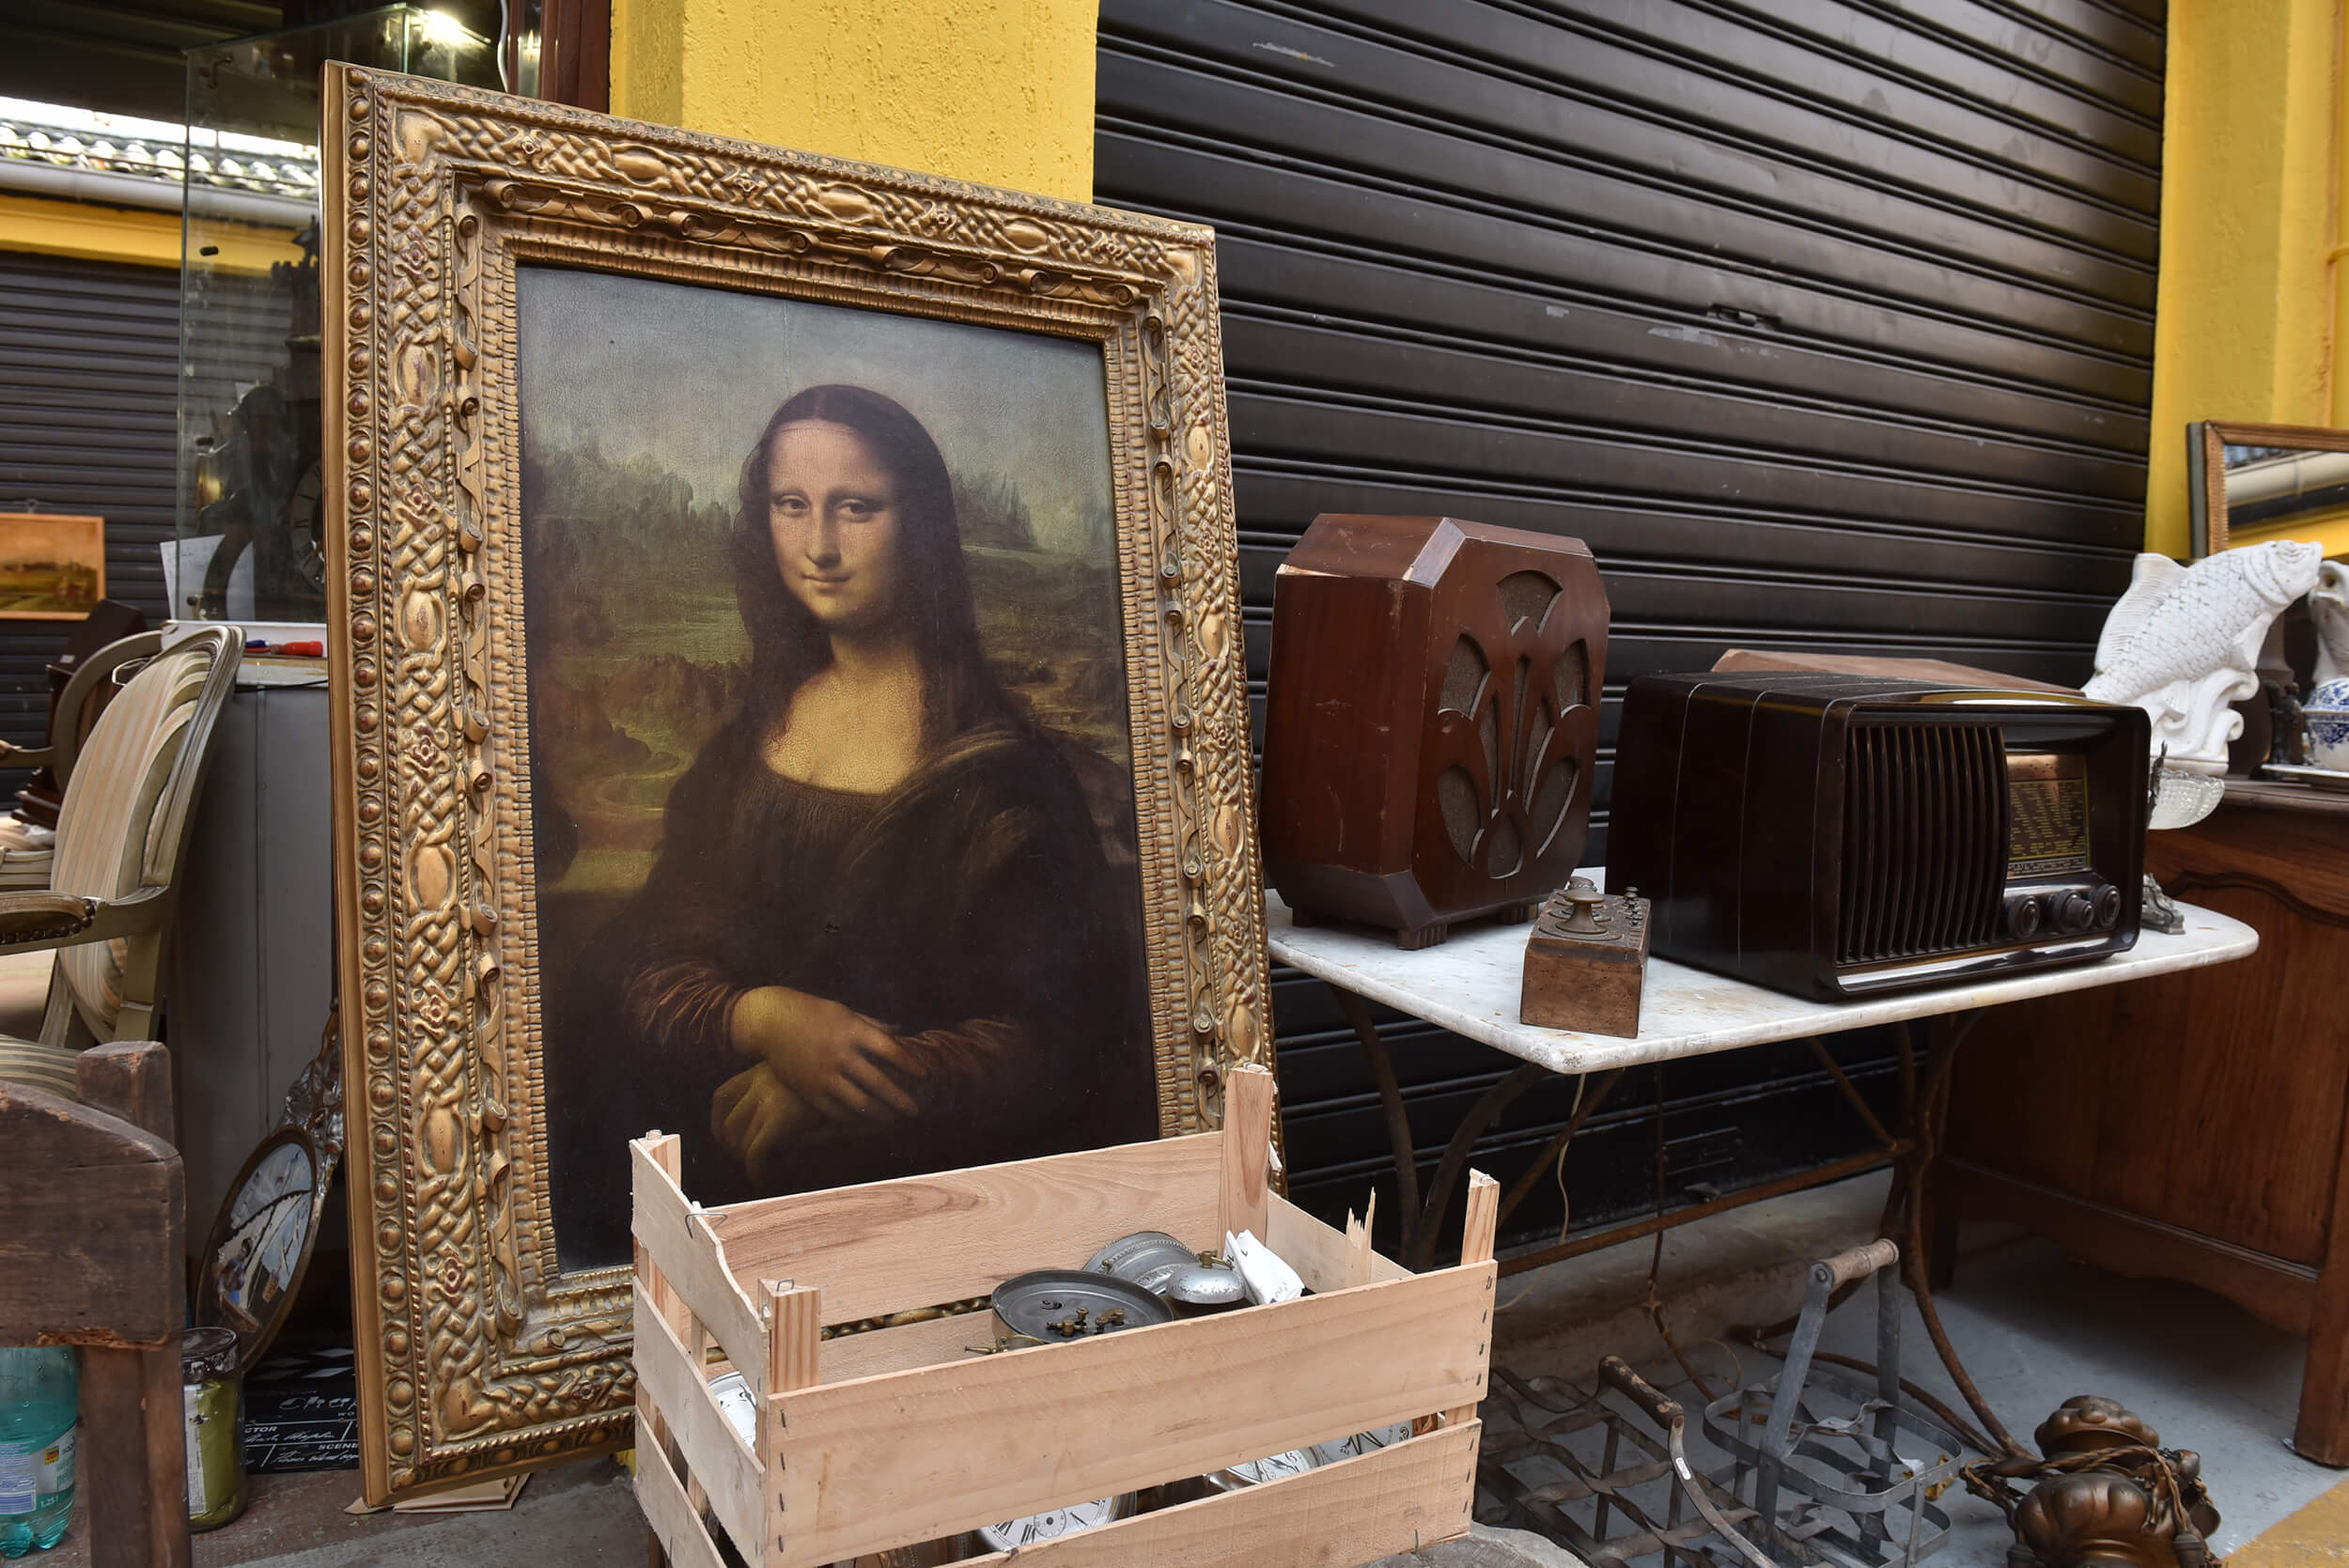 Flea market in Paris